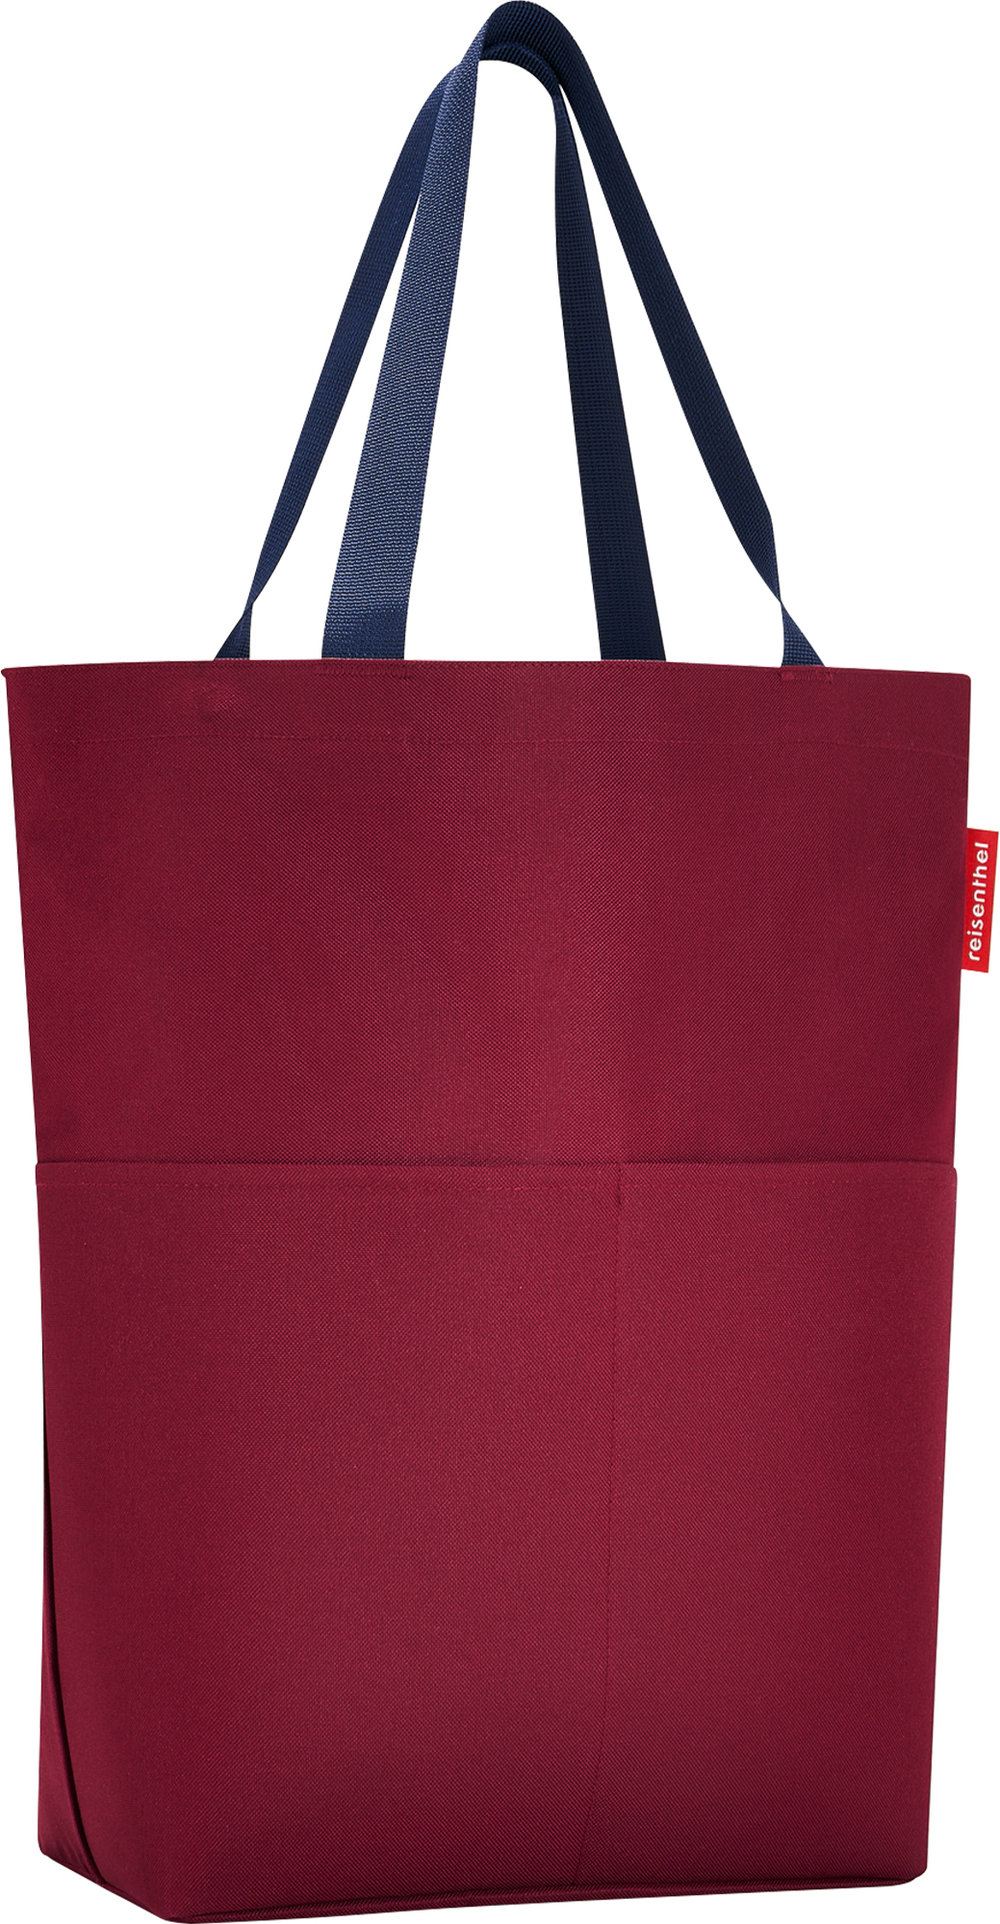 reisenthel cityshopper dark ruby